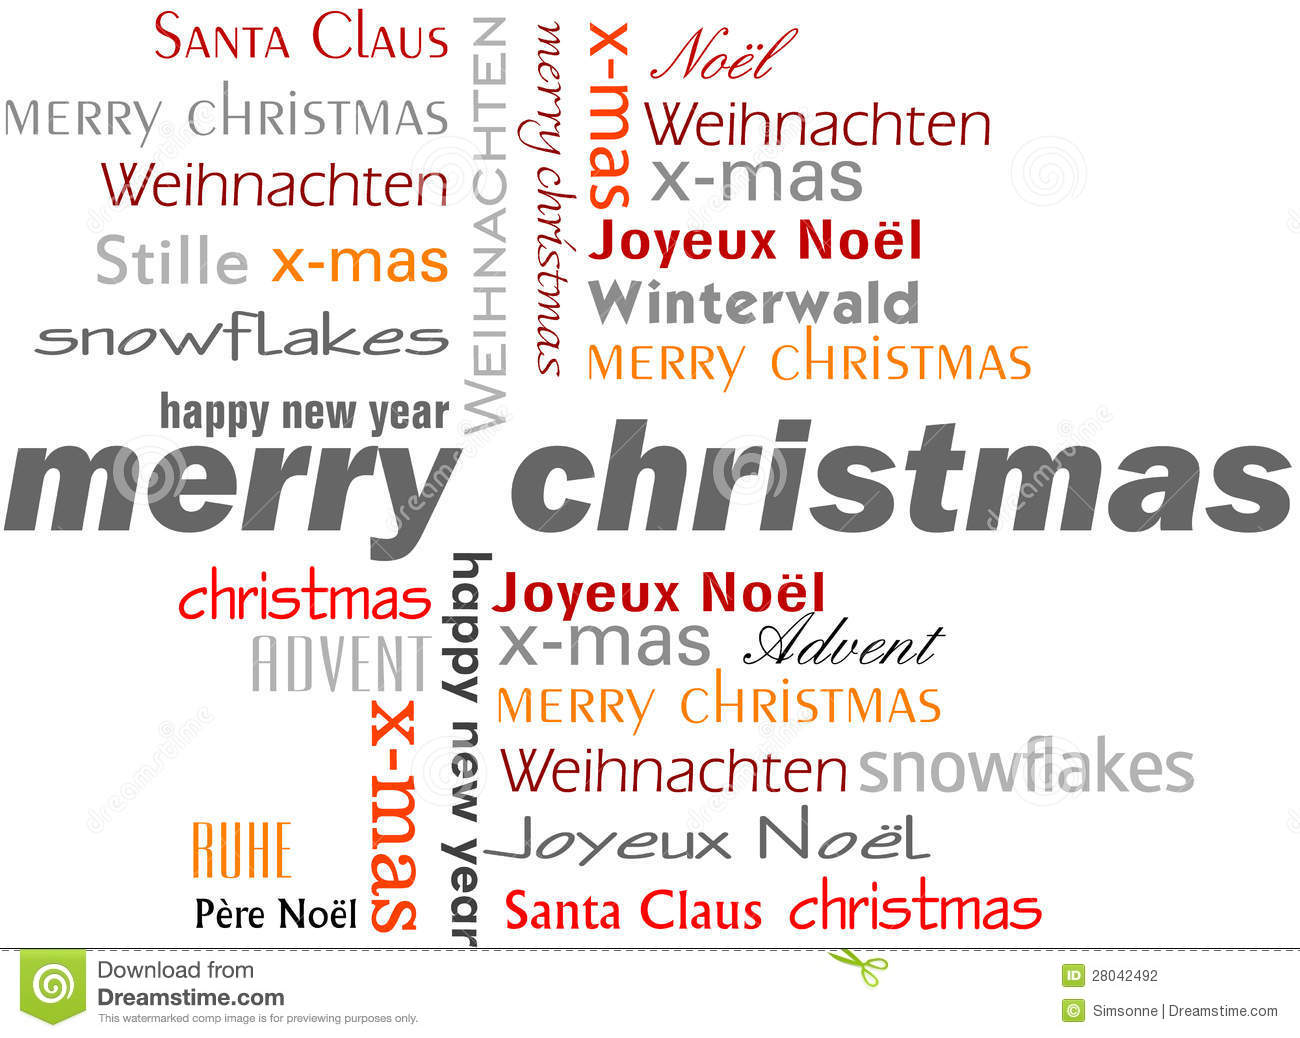 merry christmas words - Christmas Words That Start With S